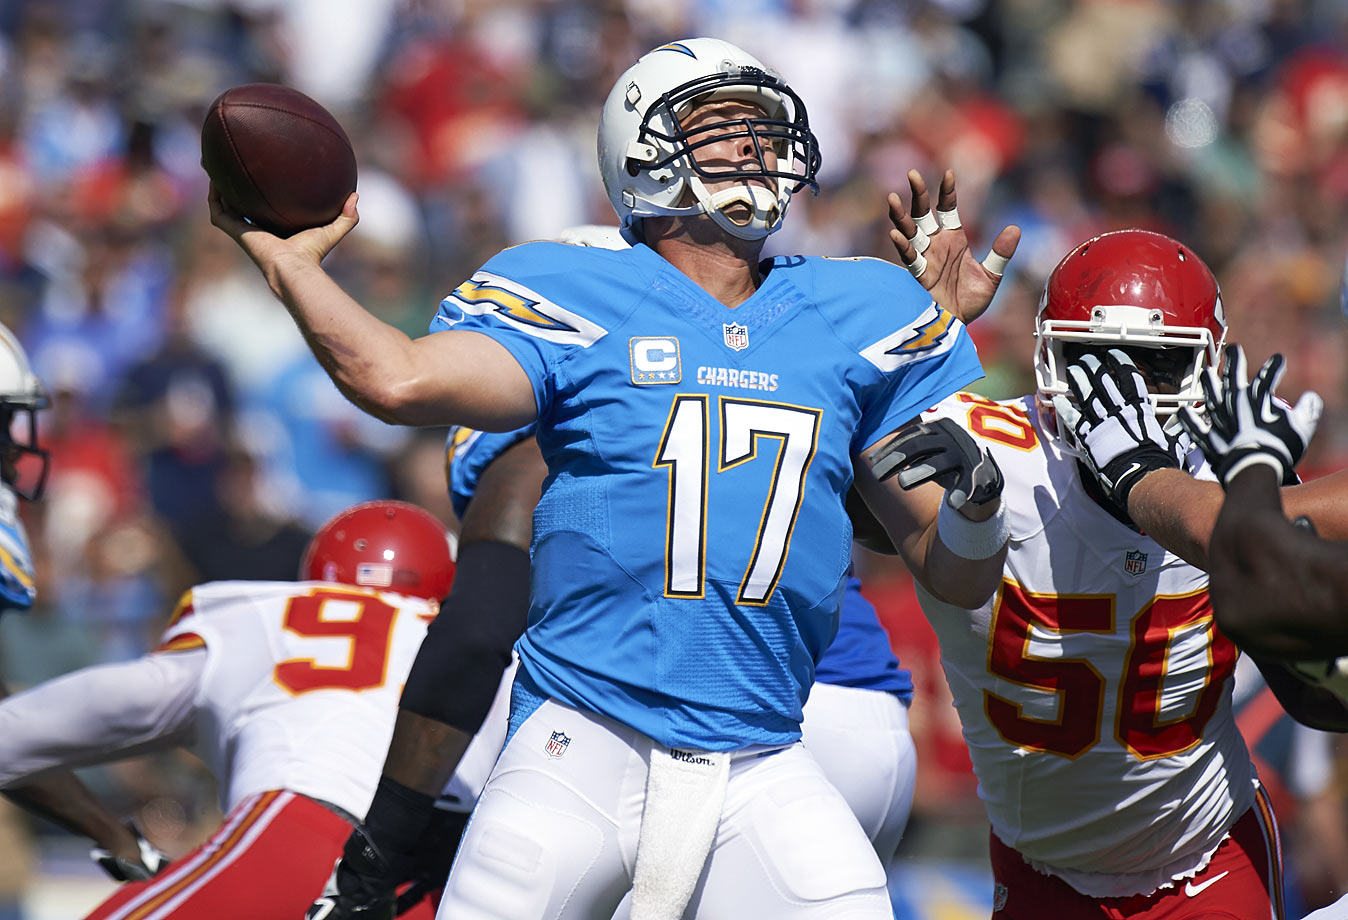 Rivers did a lot with very little in the run game to help him in 2014. Undrafted rookie Branden Oliver led the team with just 582 rushing yards, but Rivers still put up quality stats. The one metric that should be cause for concern, though, is his league-leading 18 interceptions. Rivers should have a better support system in 2015 with upgrades along the offensive line and the addition of first-round running back Melvin Gordon.